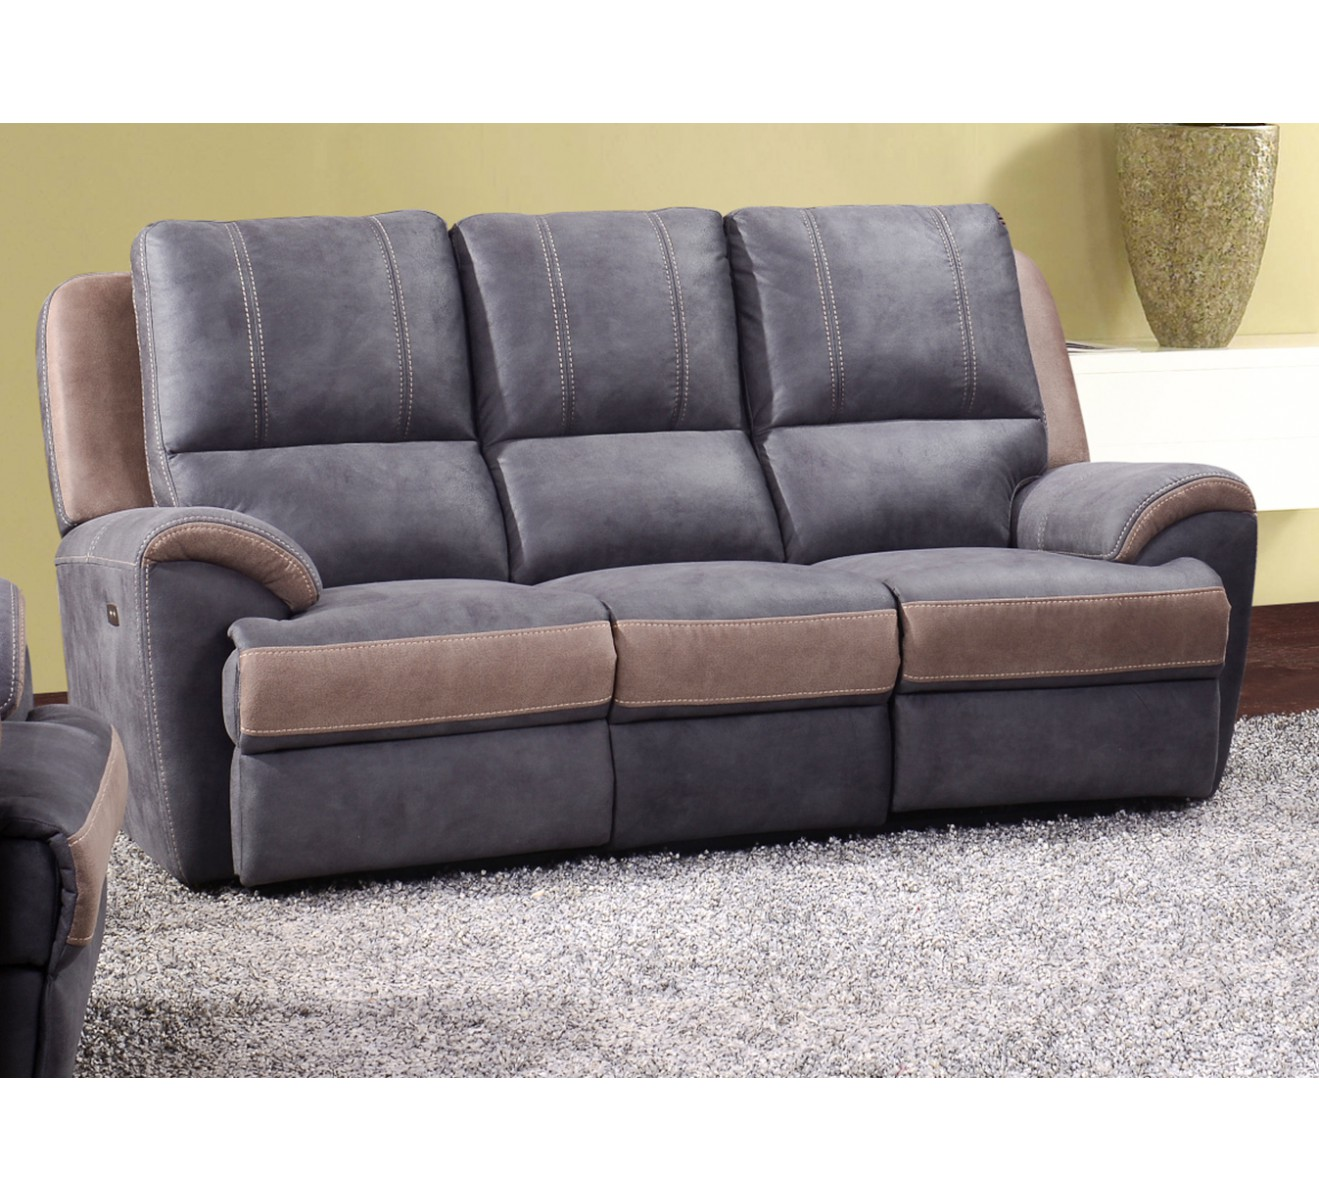 Canap relax lectrique gris 3 places ax relax 39 6810 for Canape electrique